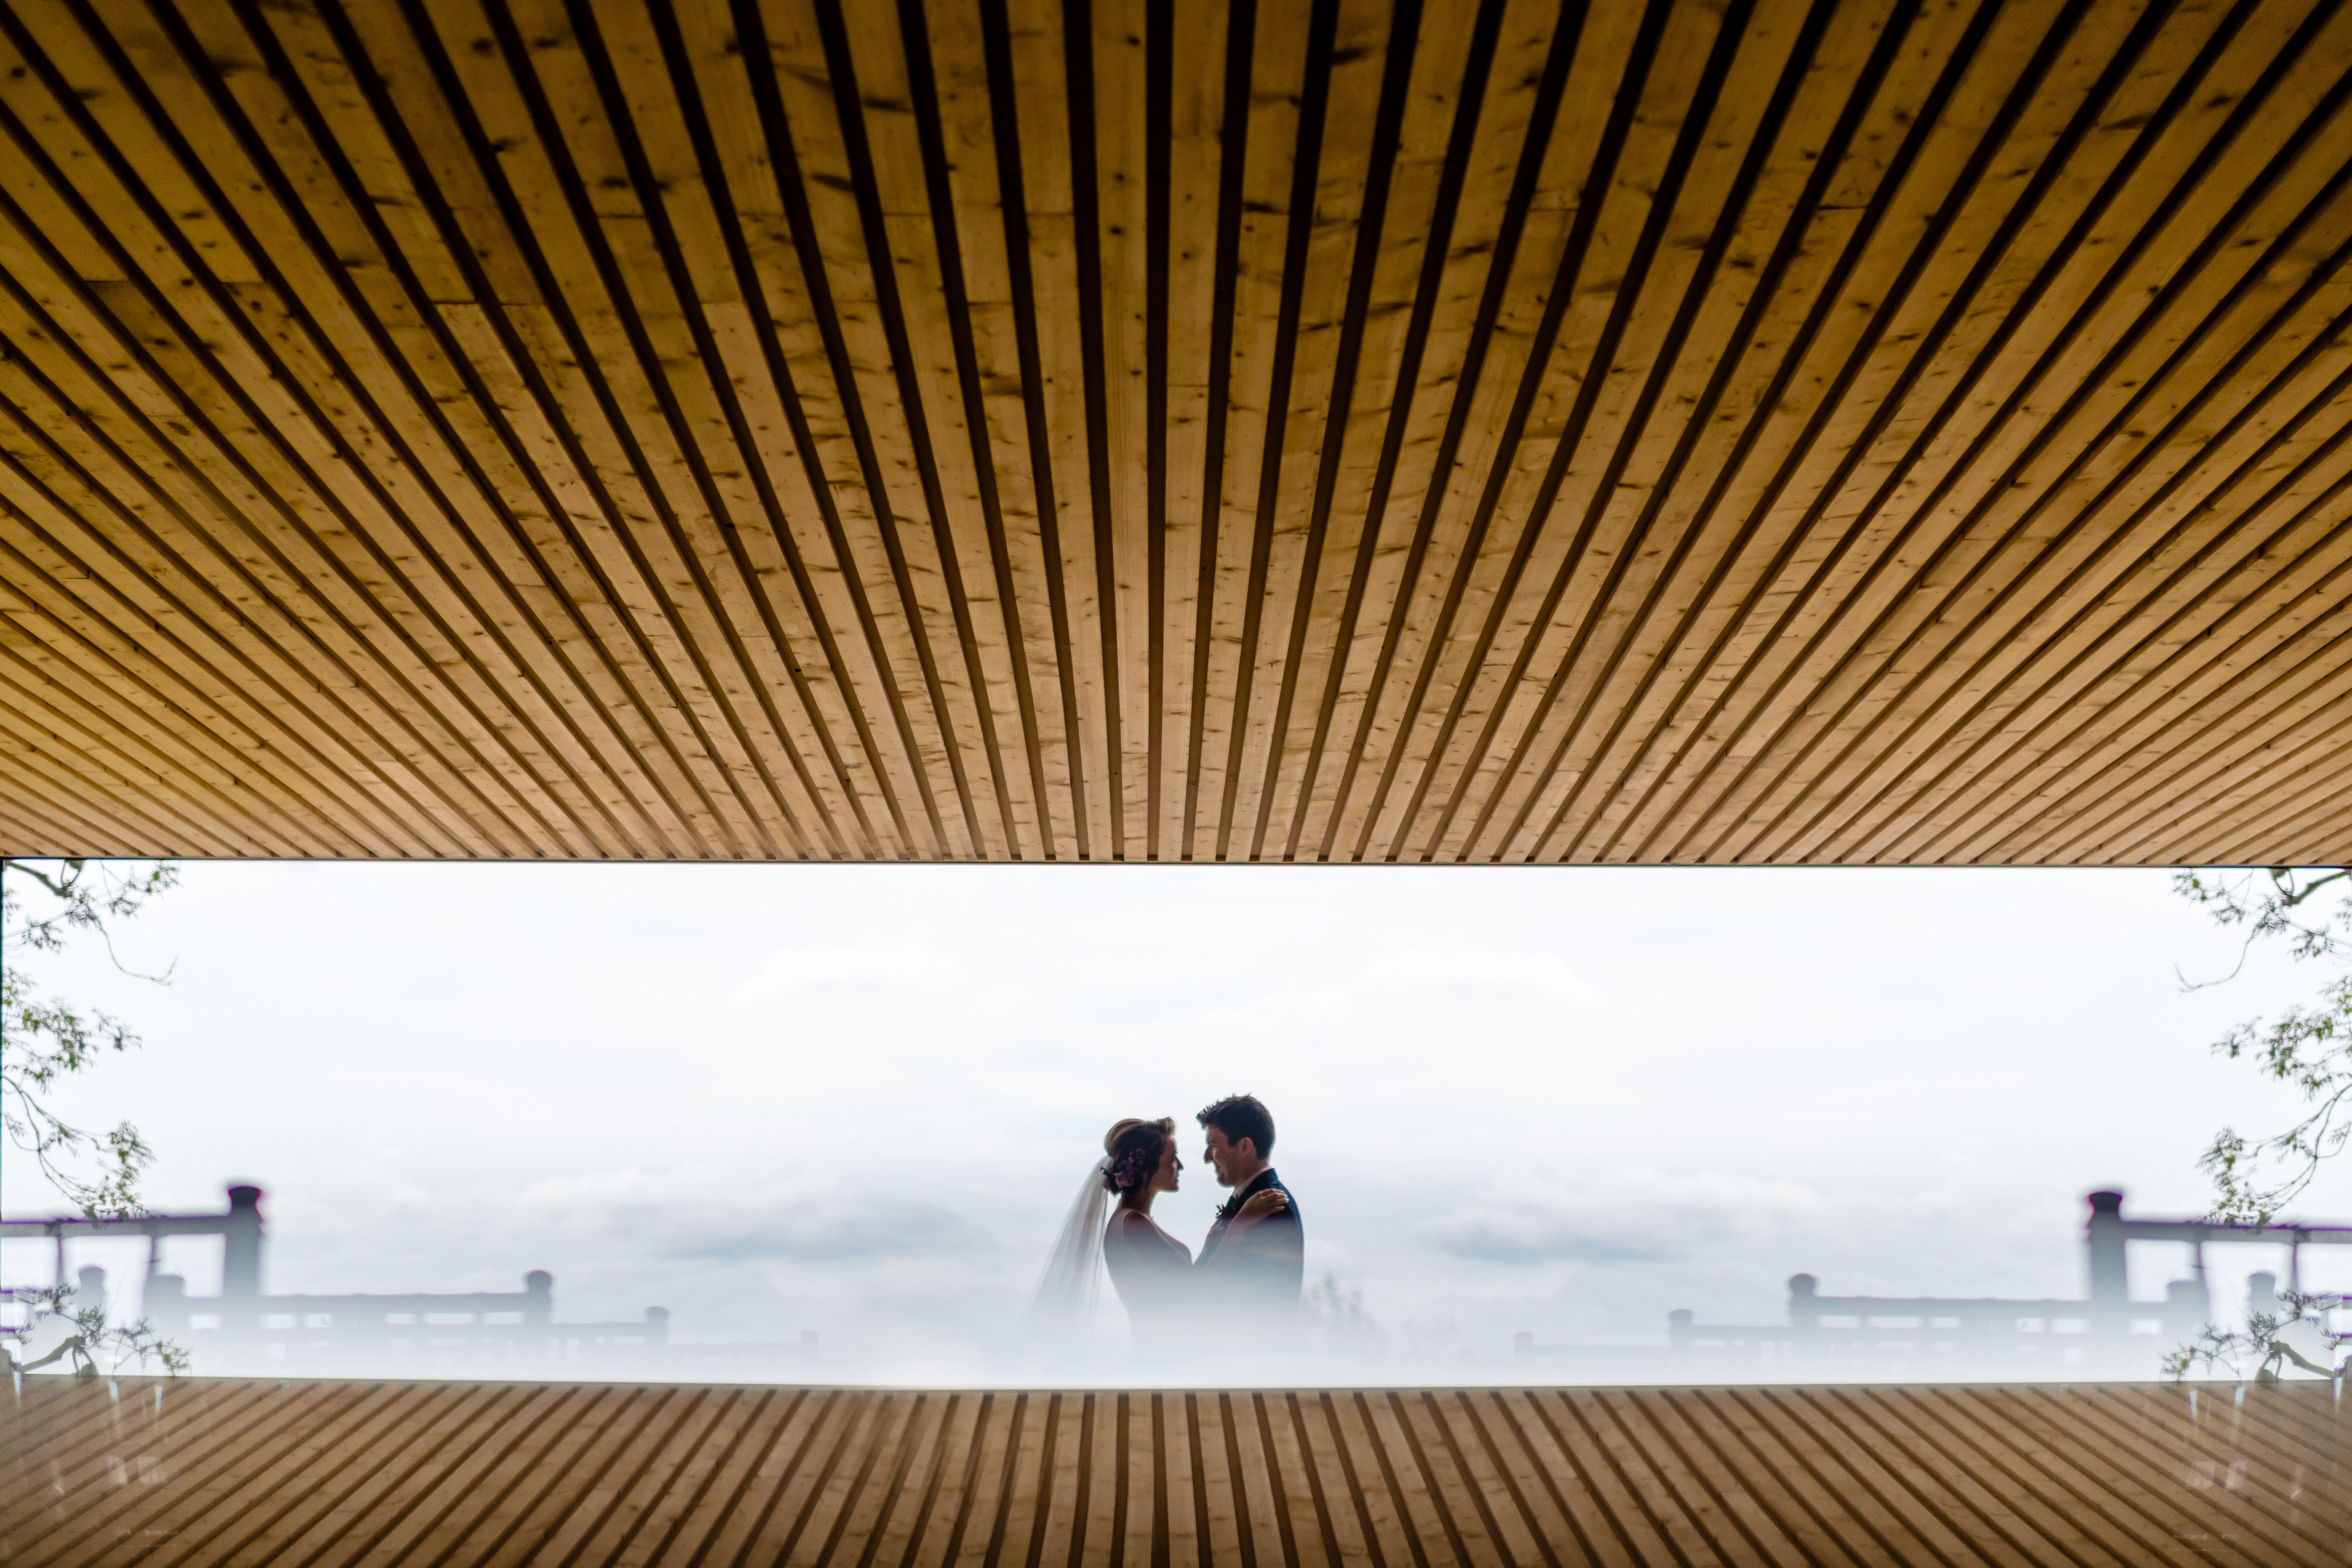 creative-composition-of-face-to-face-couple-in-the-mist-john-gillooley